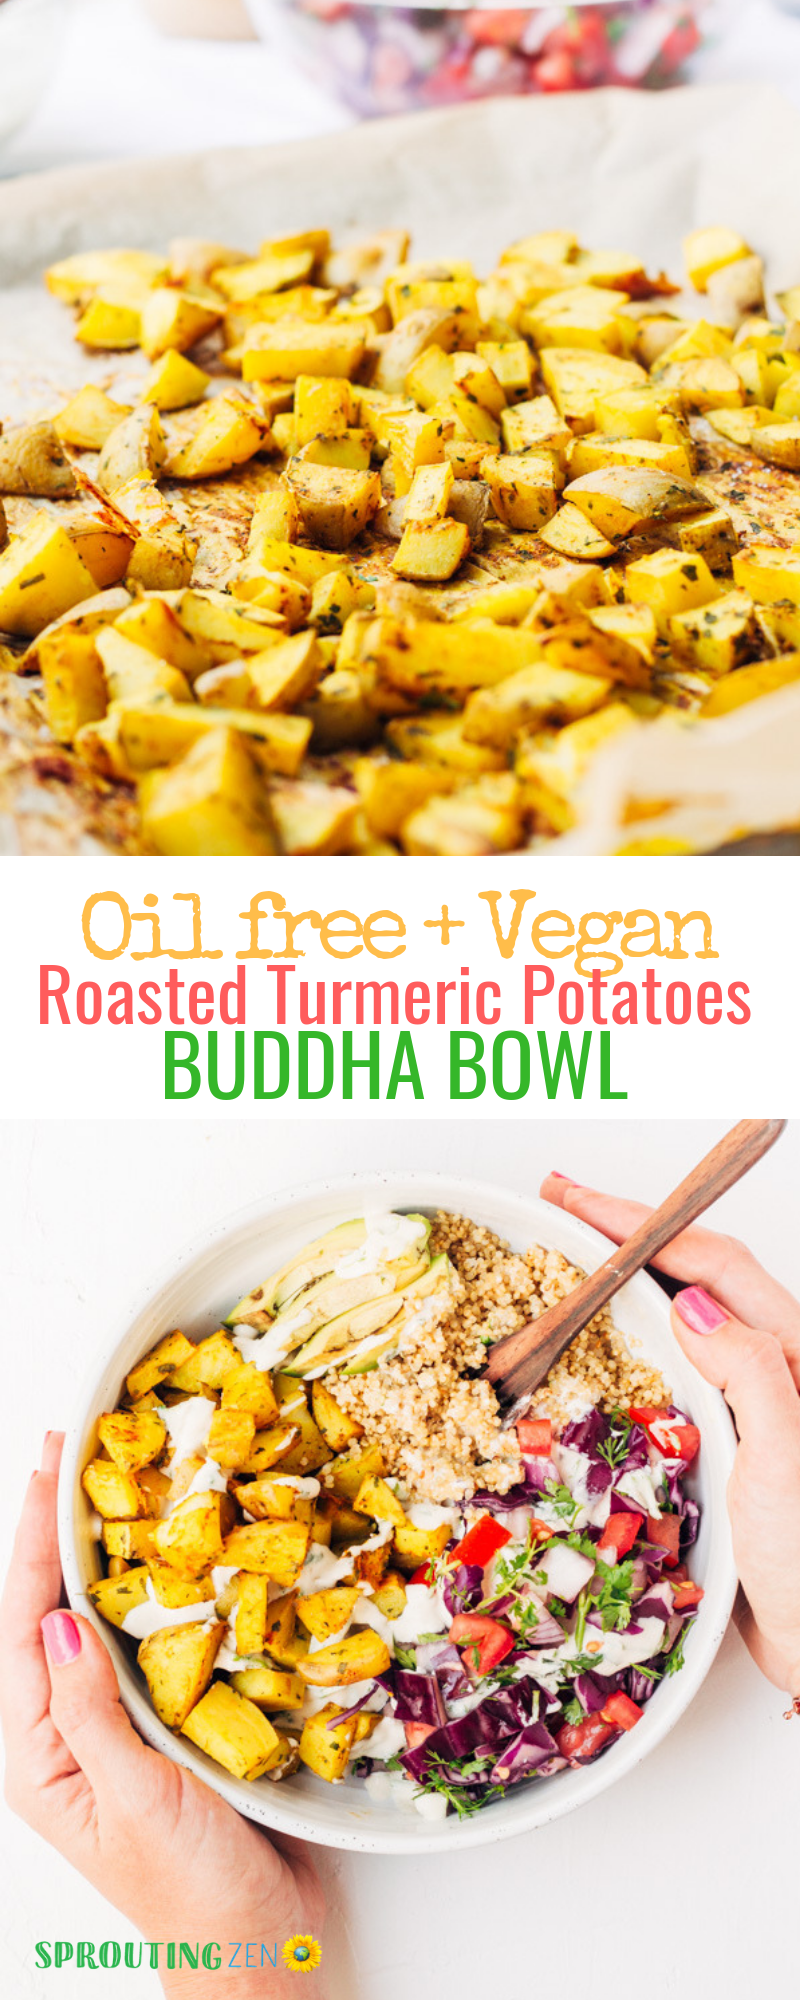 Tasty Vegan Buddha Bowl with Roasted Turmeric Infused Potatoes and Quinoa. Oil free and Gluten free | Sprouting Zen #vegan #plantbased #healthyrecipes #recipesfordinner